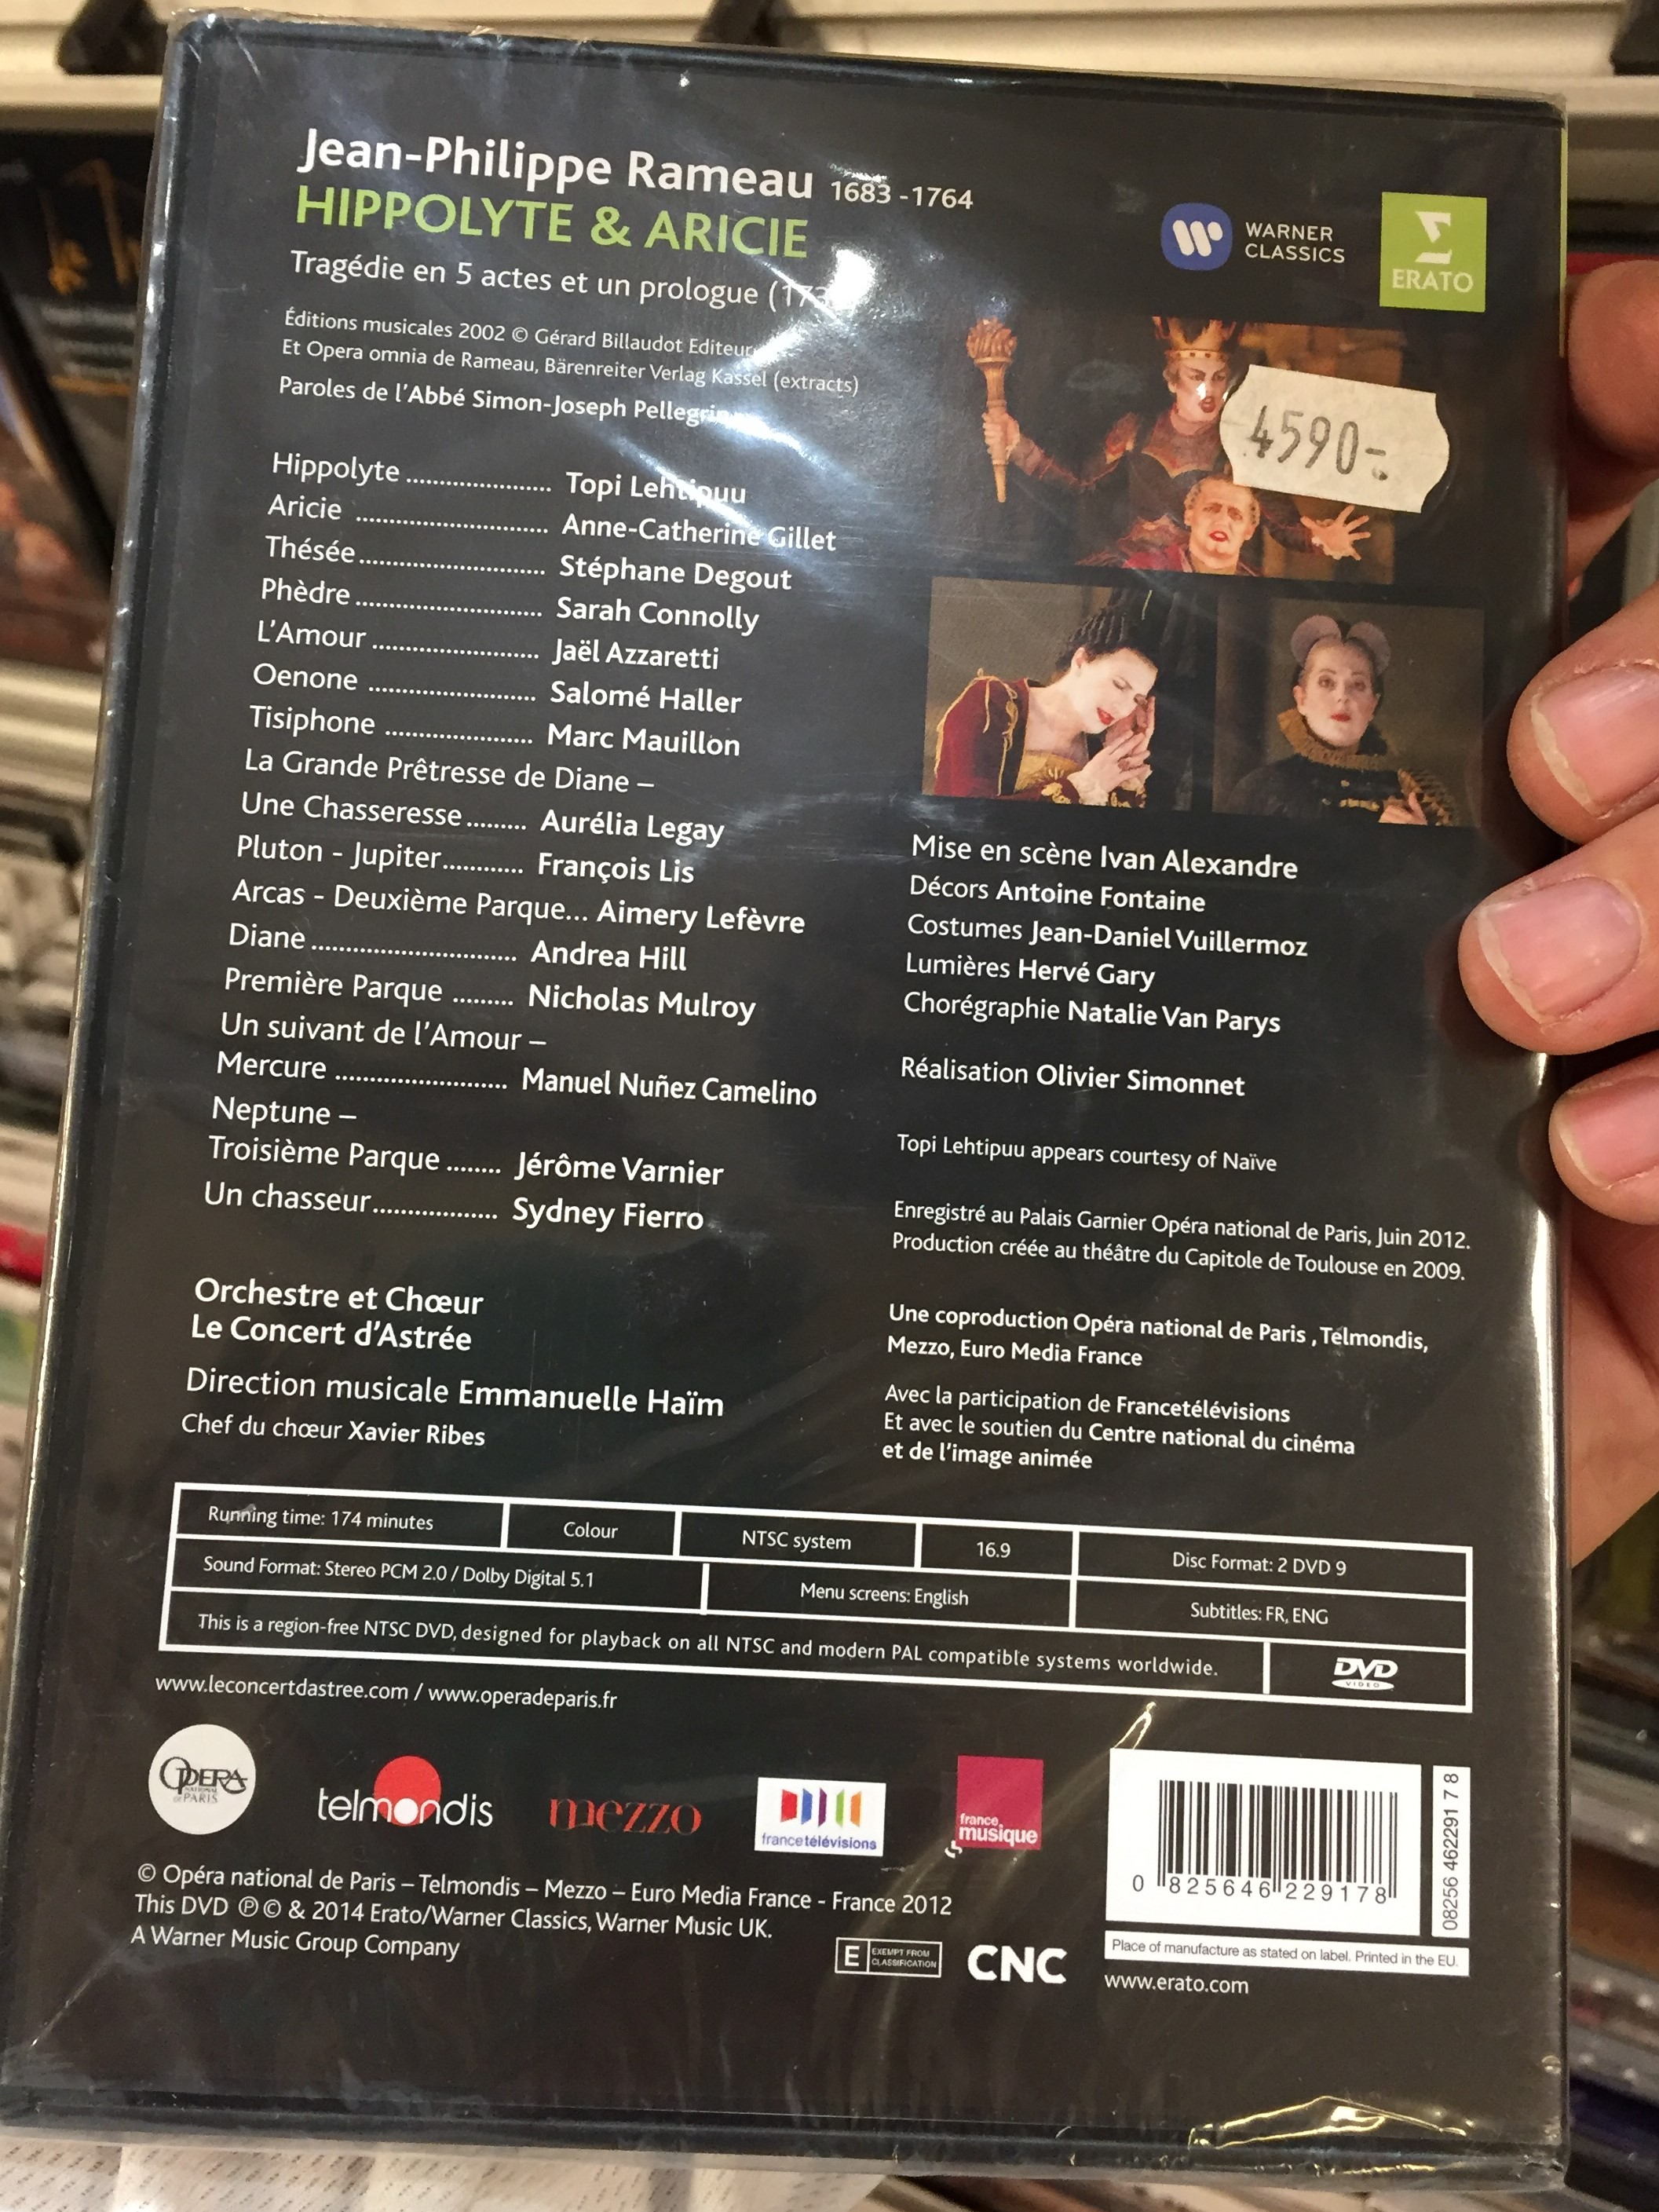 jean-philippe-rameau-hippolyte-et-aricie-dvd-lehtipuu-gillet-degout-connolly-stage-director-ivan-alexandre-2-dvd-directed-by-olivier-simonnet-conducted-by-emmanuelle-haim-2-.jpg